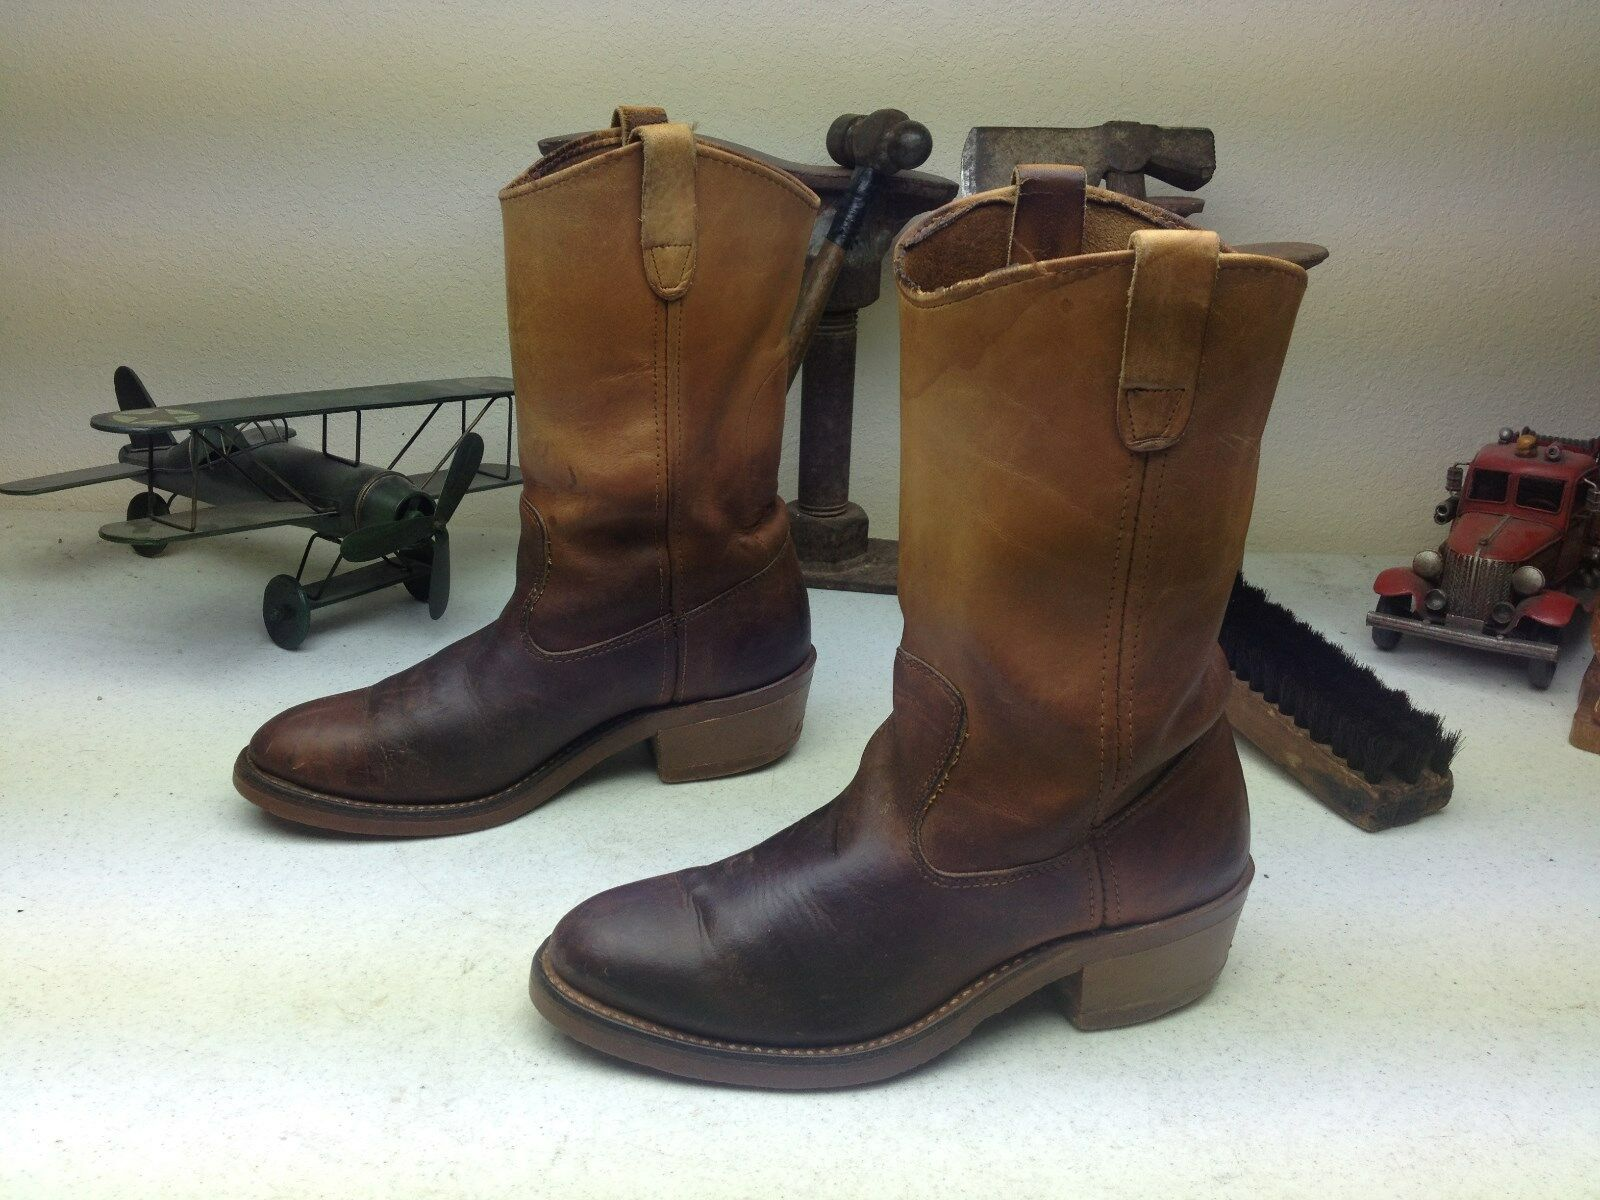 VINTAGE MADE IN USA DOUBLE H BROWN ENGINEER WESTERN LEATHER BOSS BOOTS 7.5 D